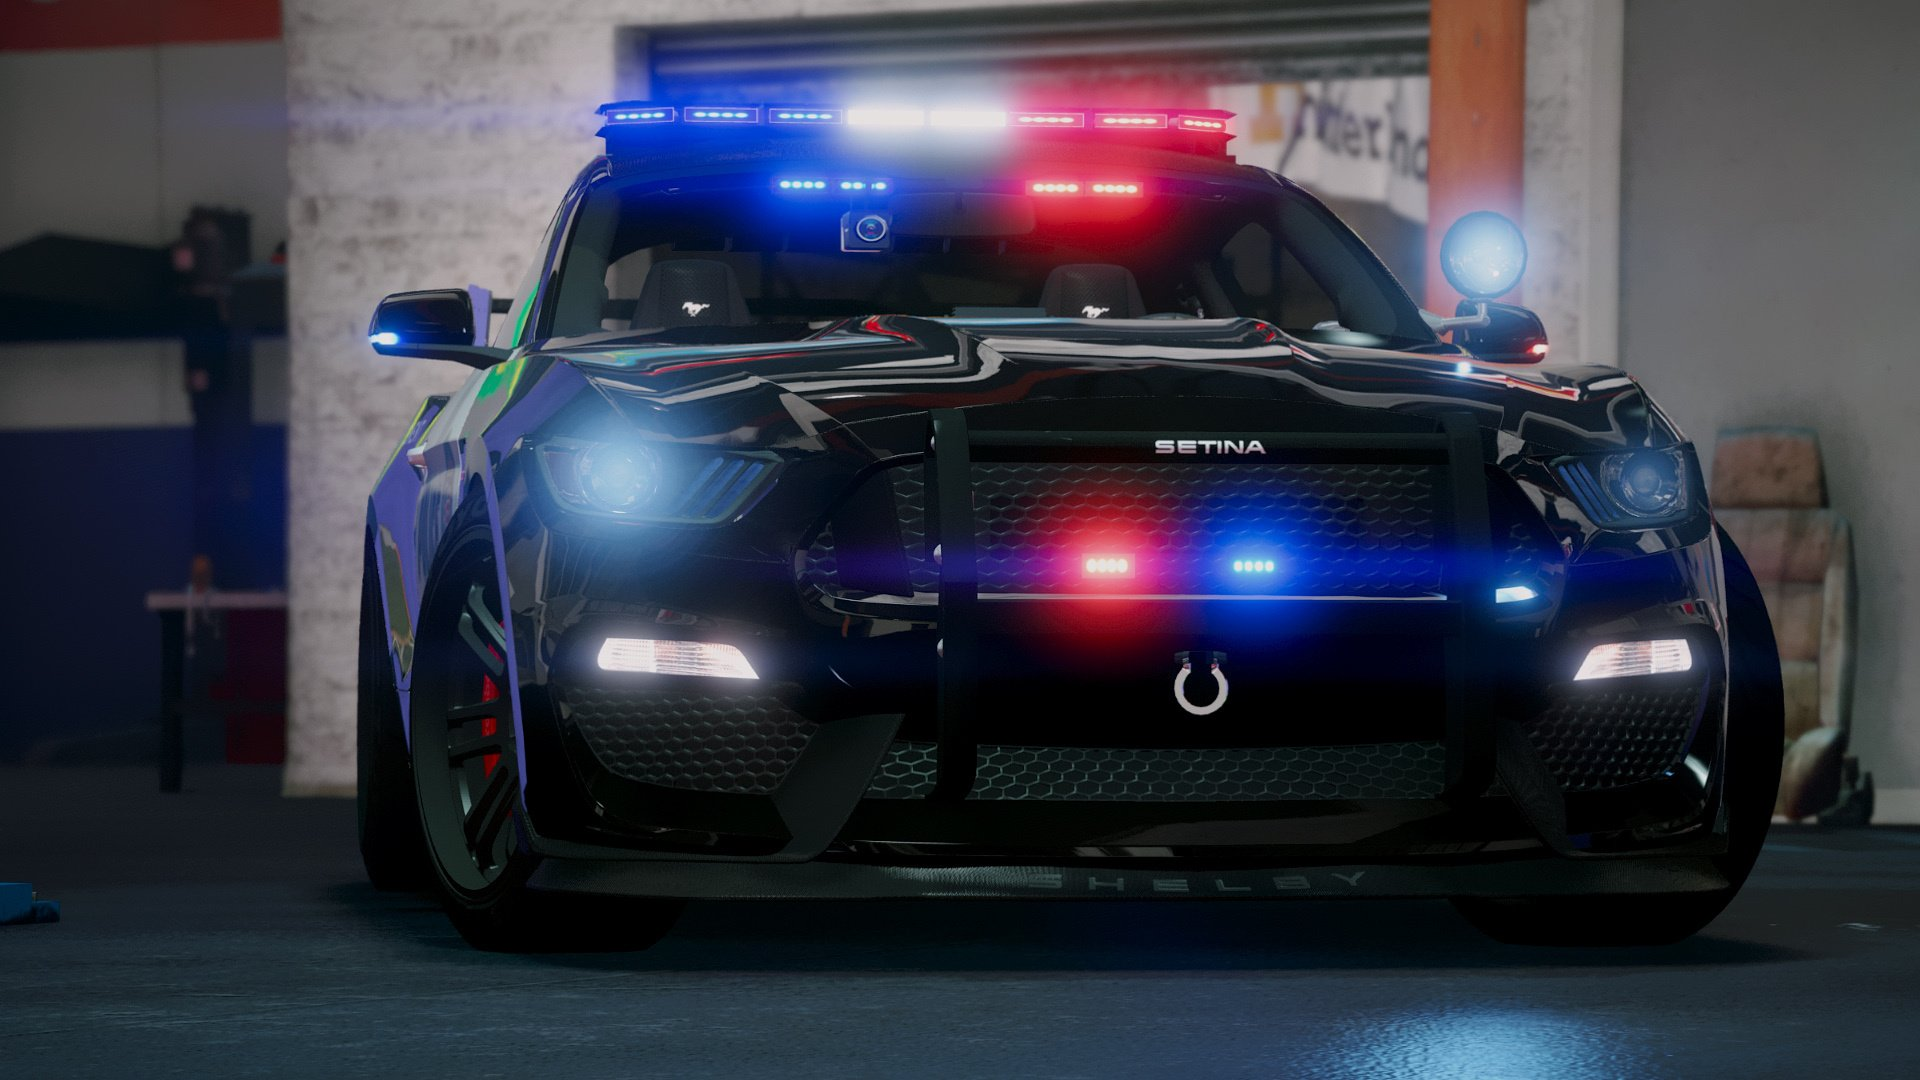 2015 Police Mustang GT [Add-On] - GTA5-Mods com